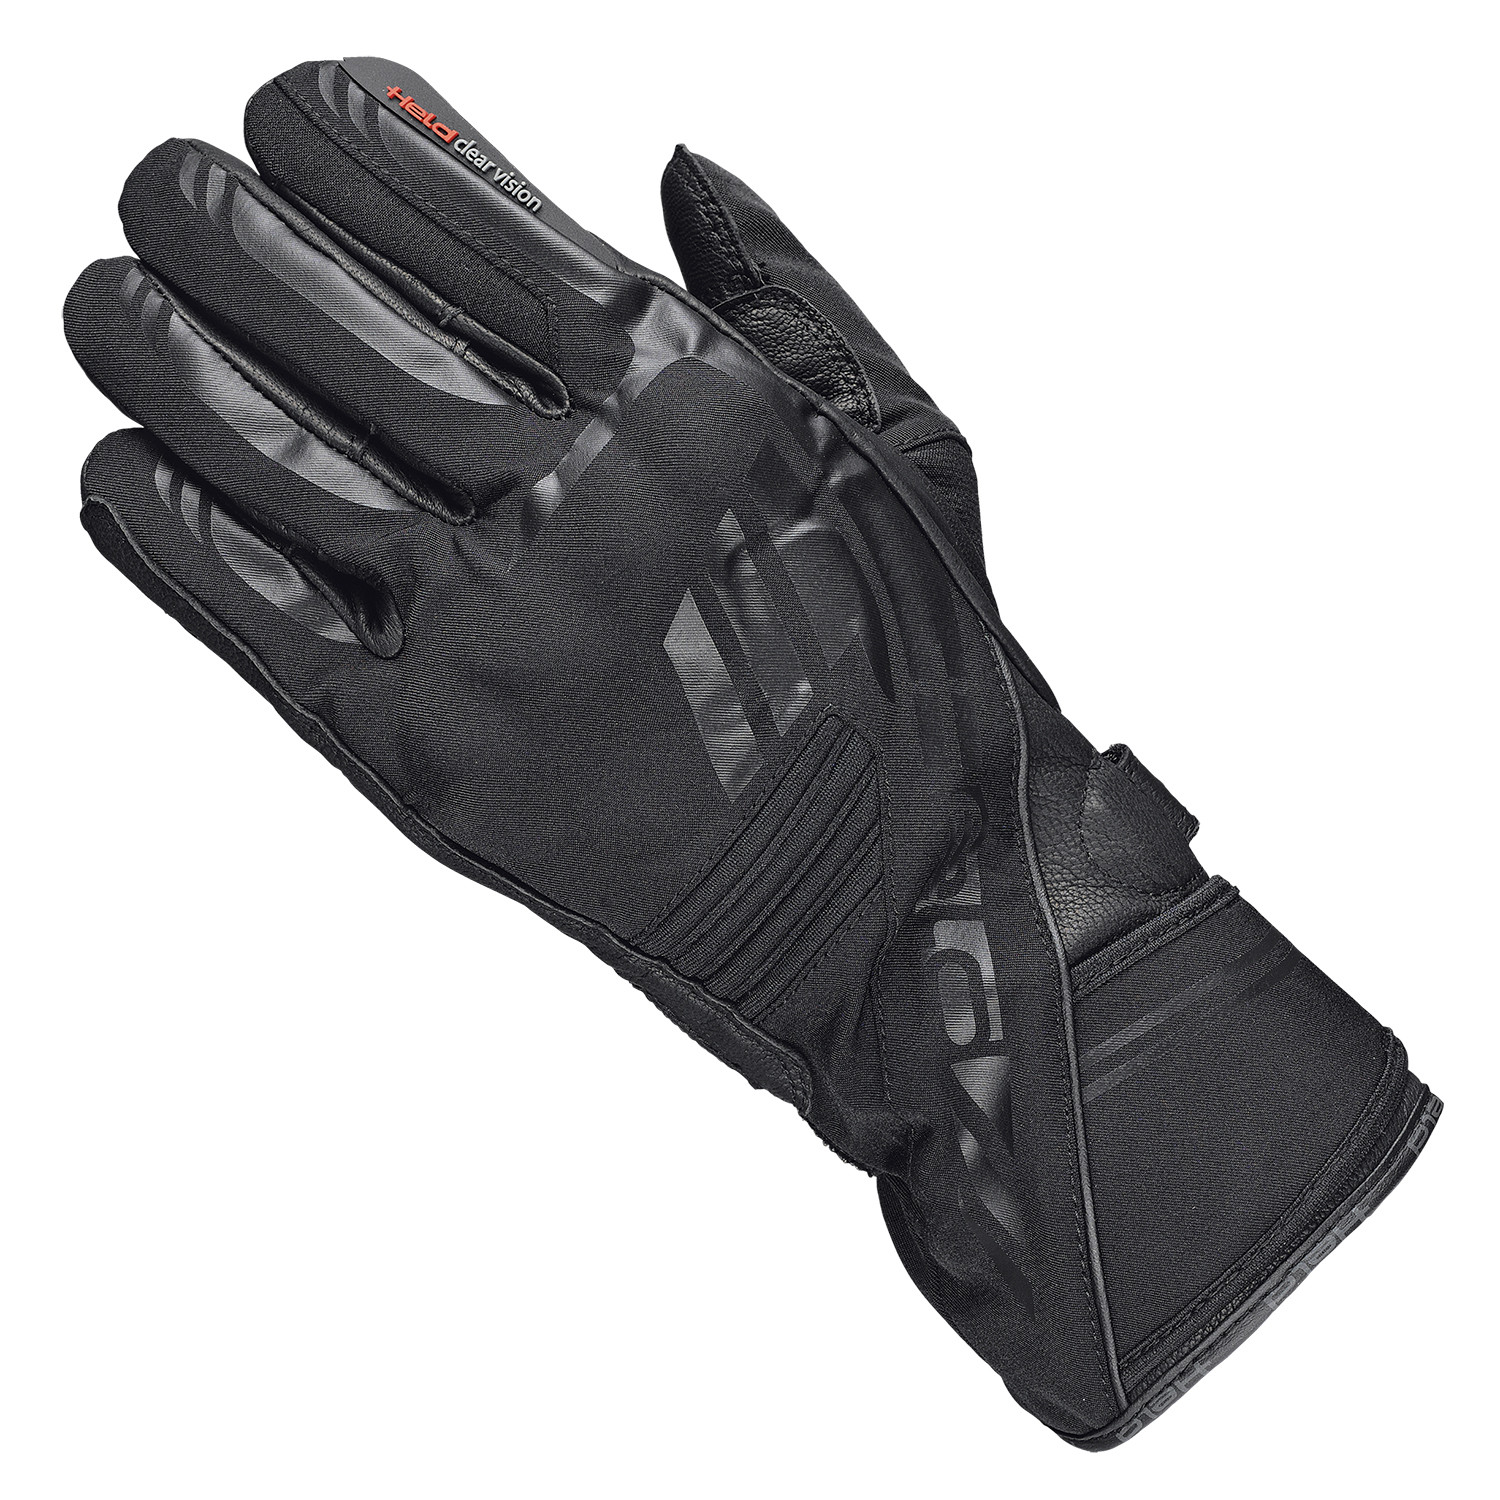 Guantes Impermeables de Turismo Held Seric Gore-Tex